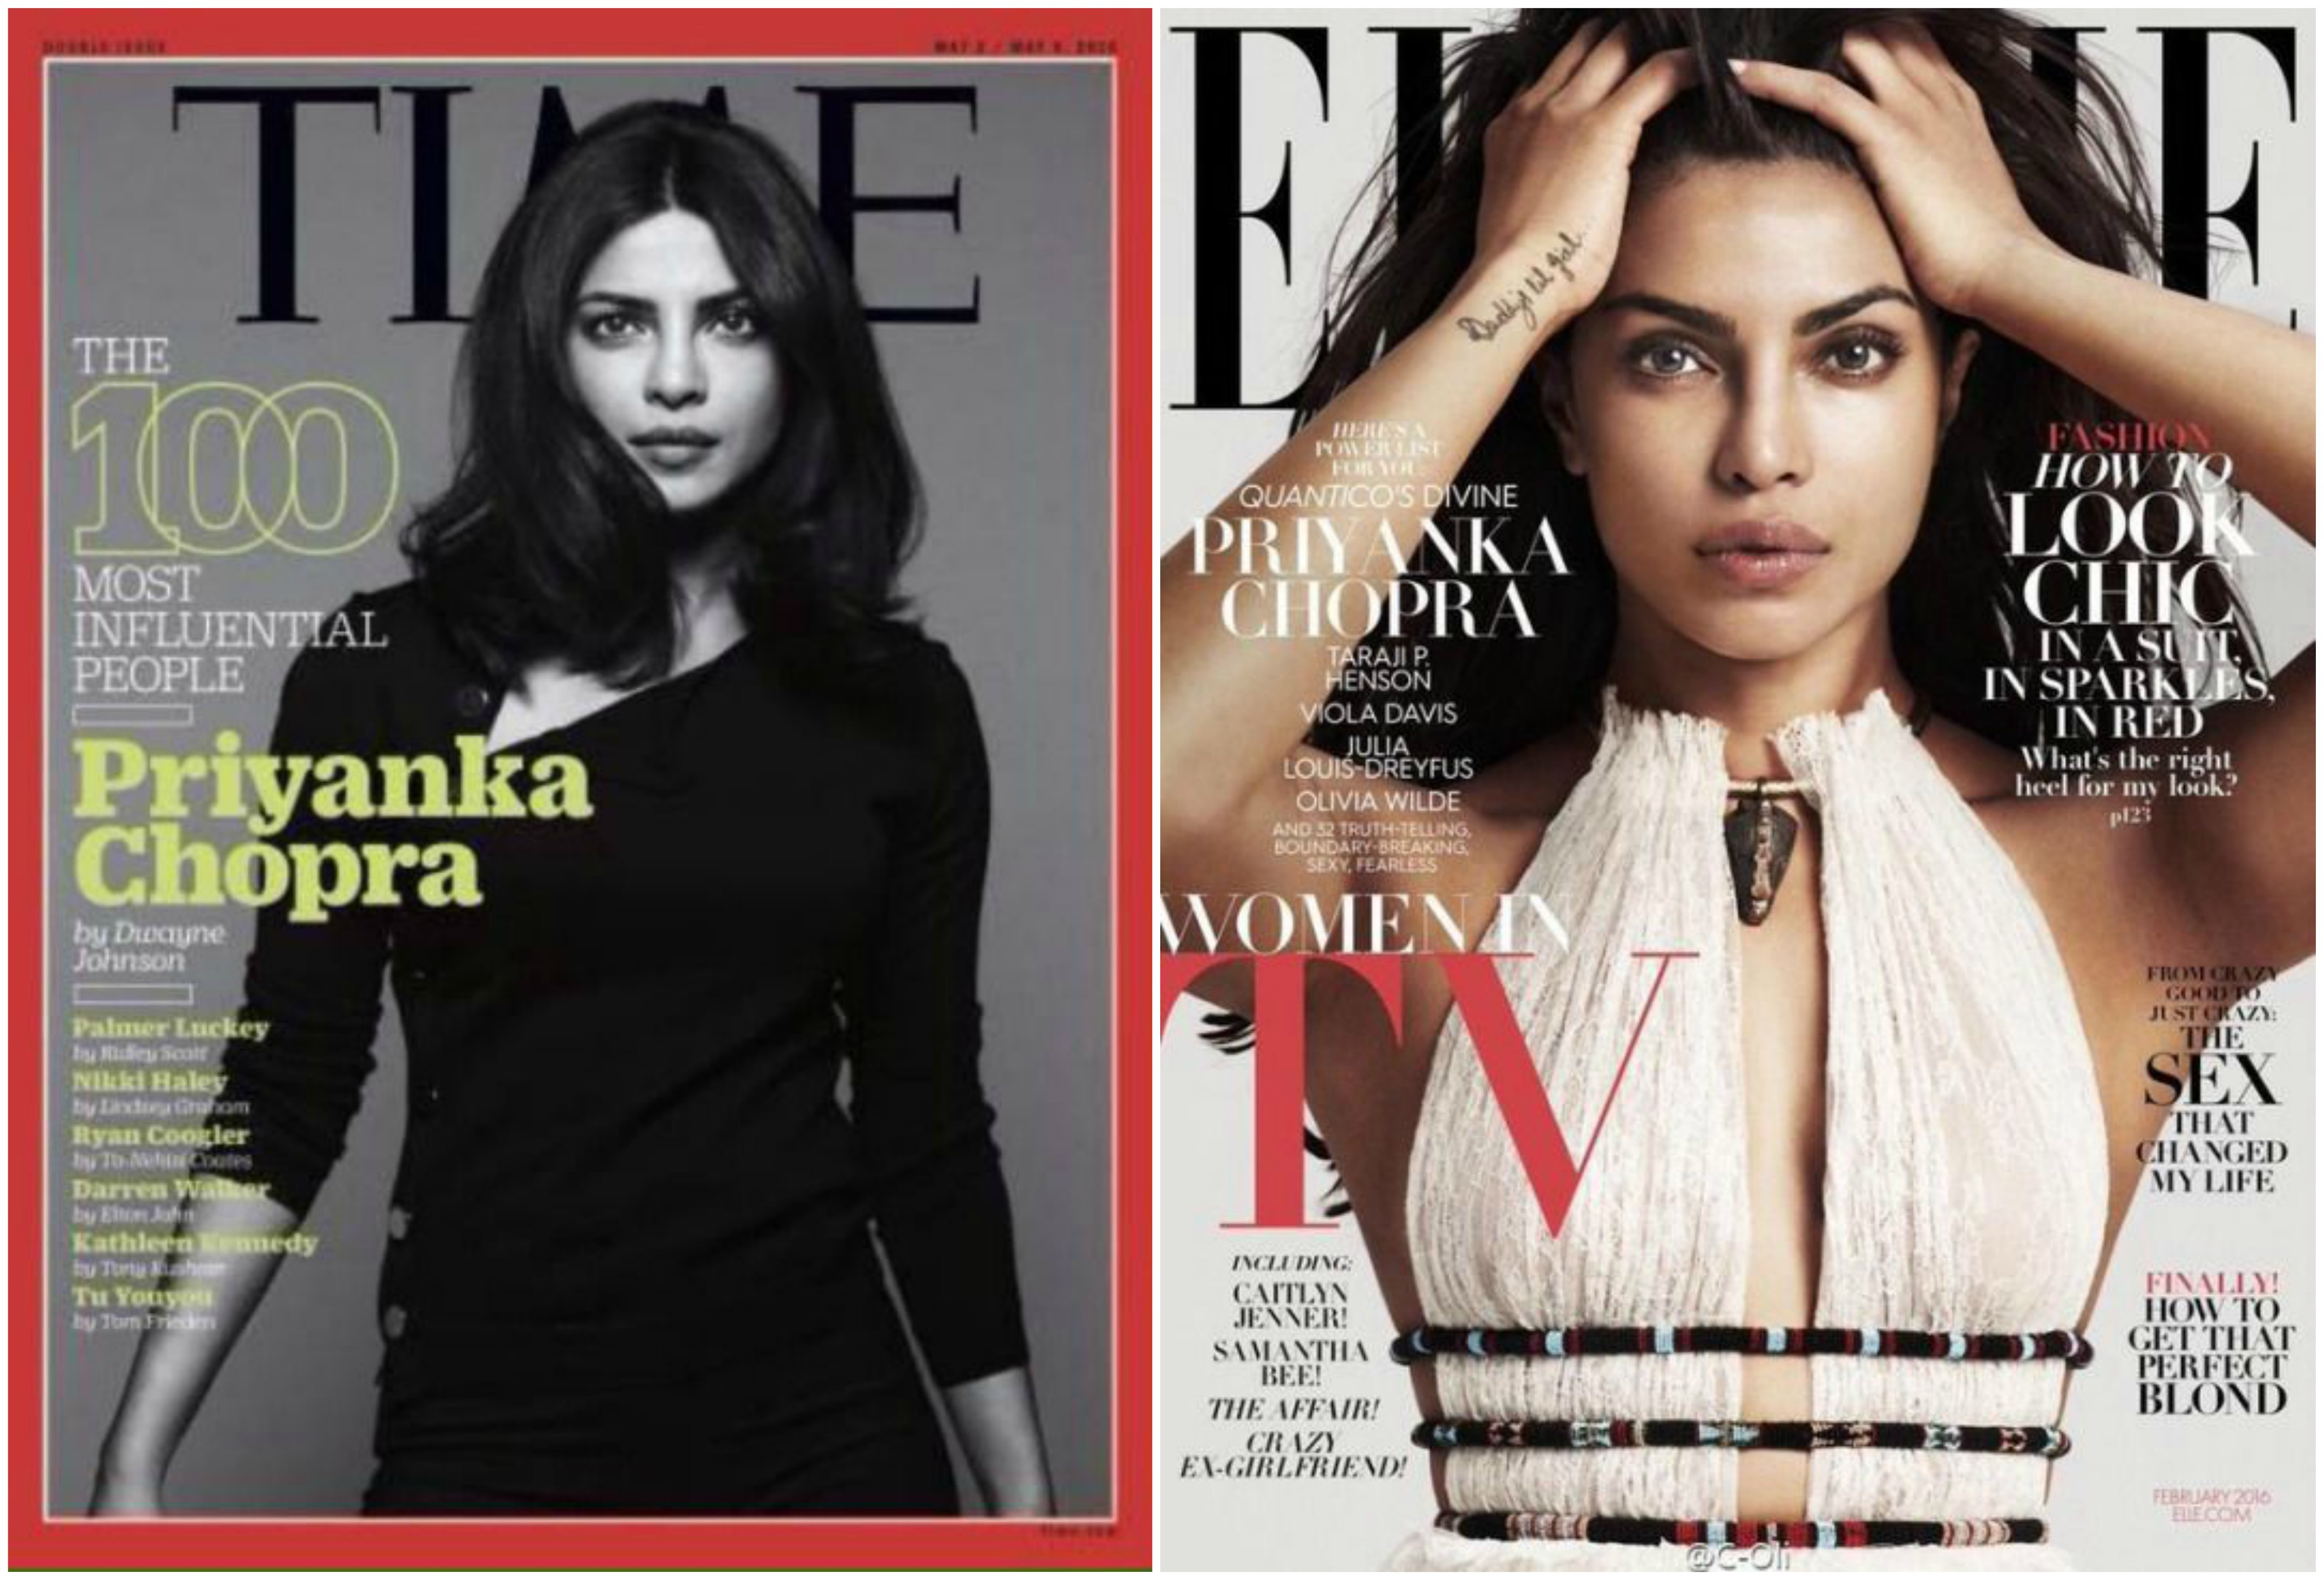 Unstoppable and Unapologetic! Priyanka Chopra on these International Magazine Covers